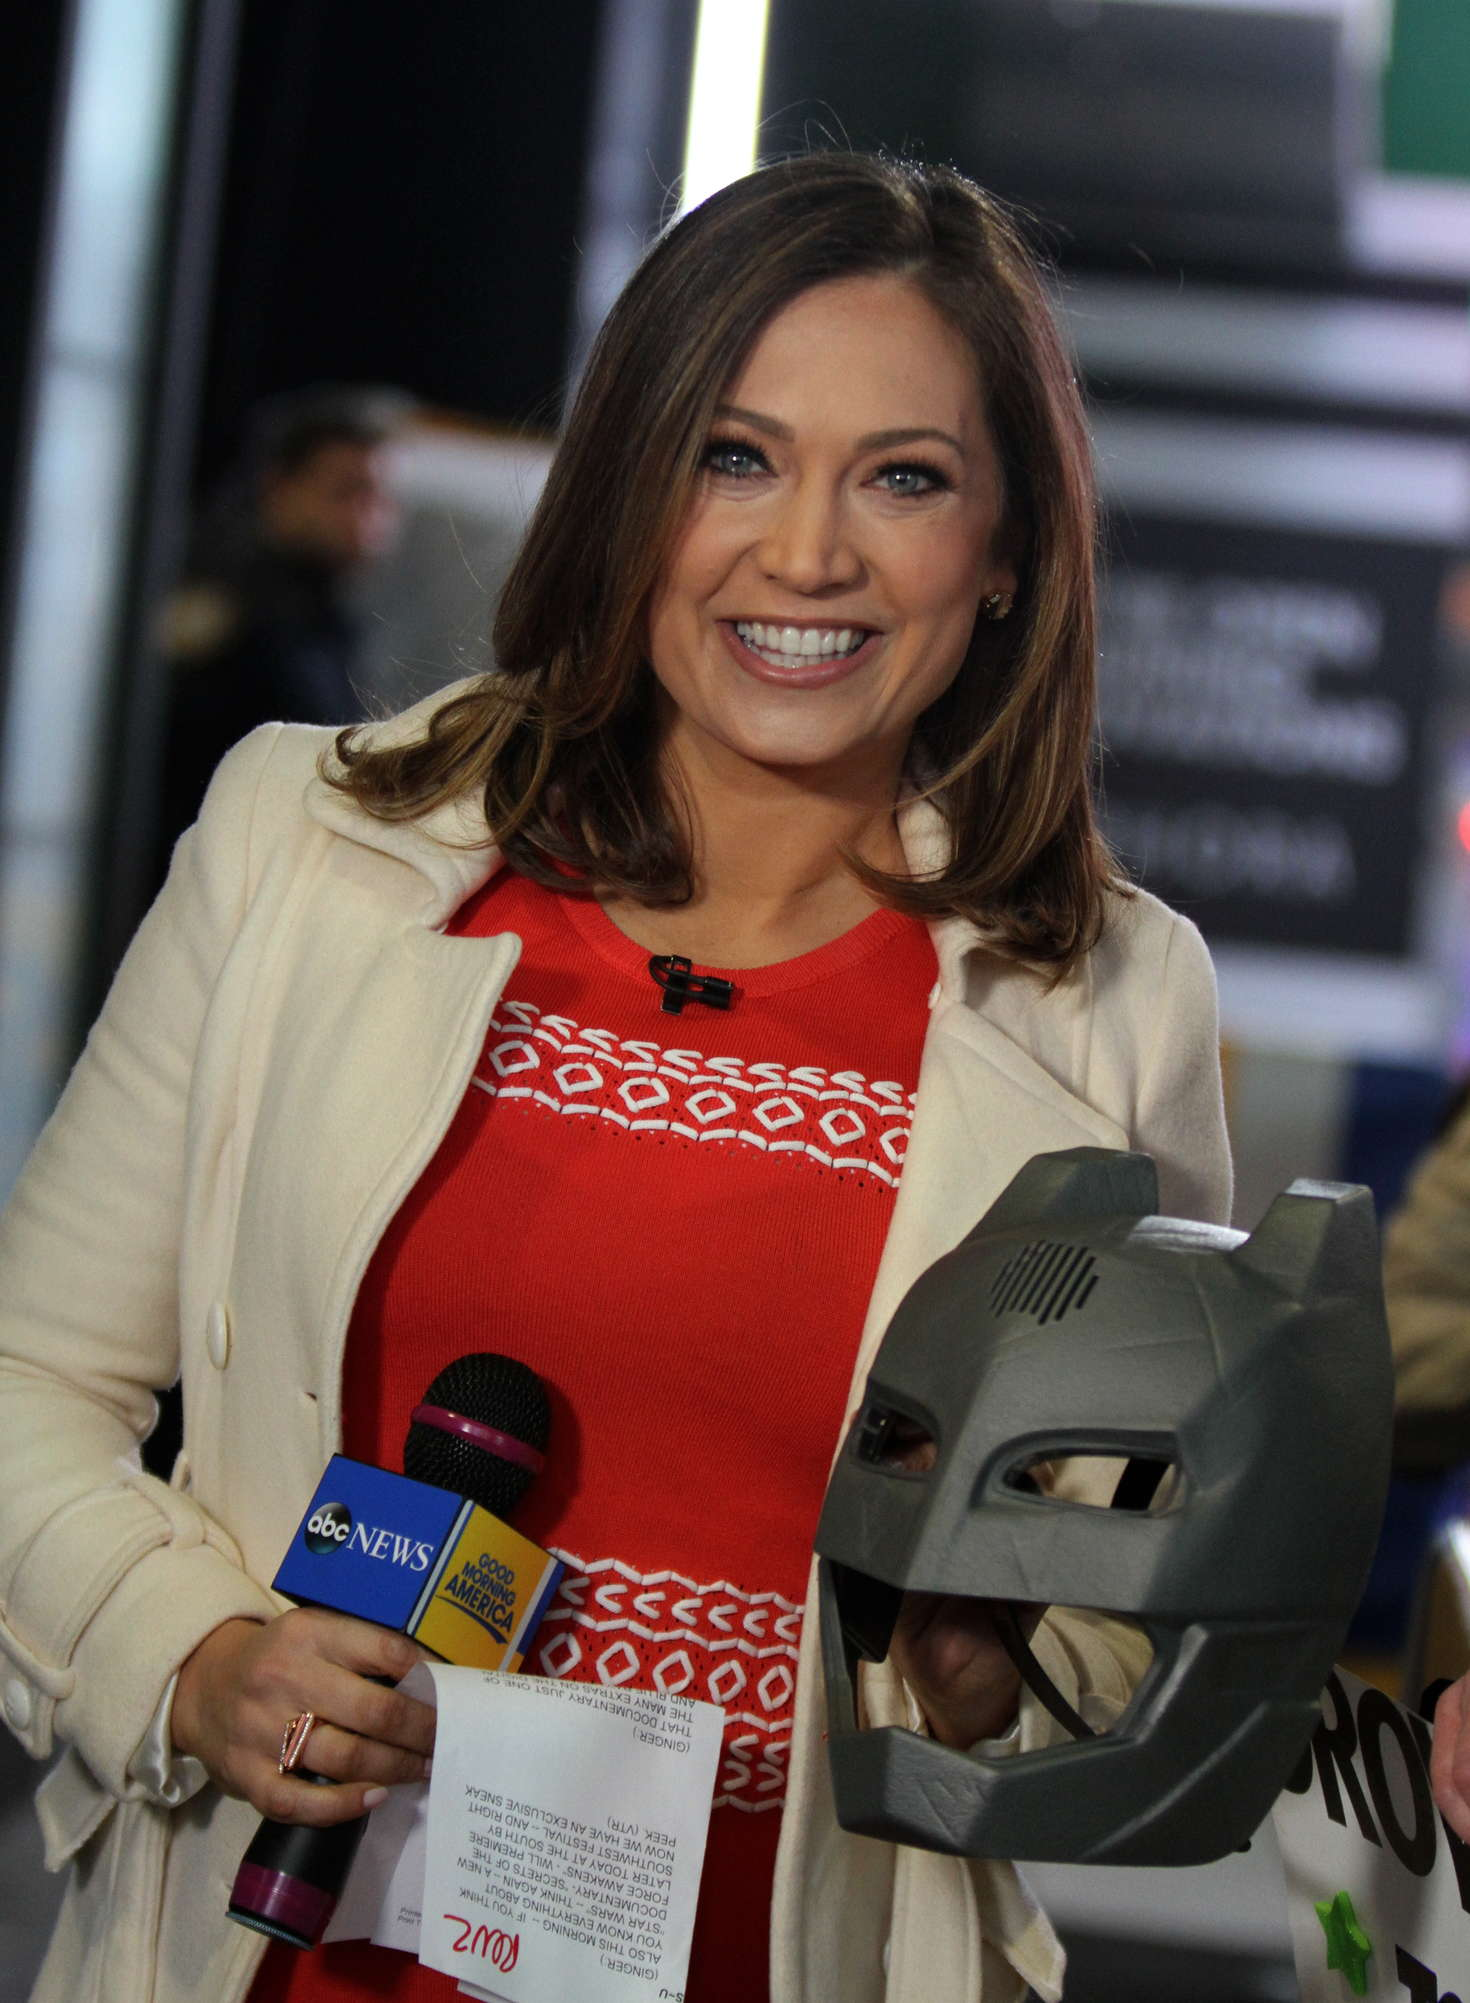 Good Morning America Ginger : Ginger zee at the good morning america show in nyc